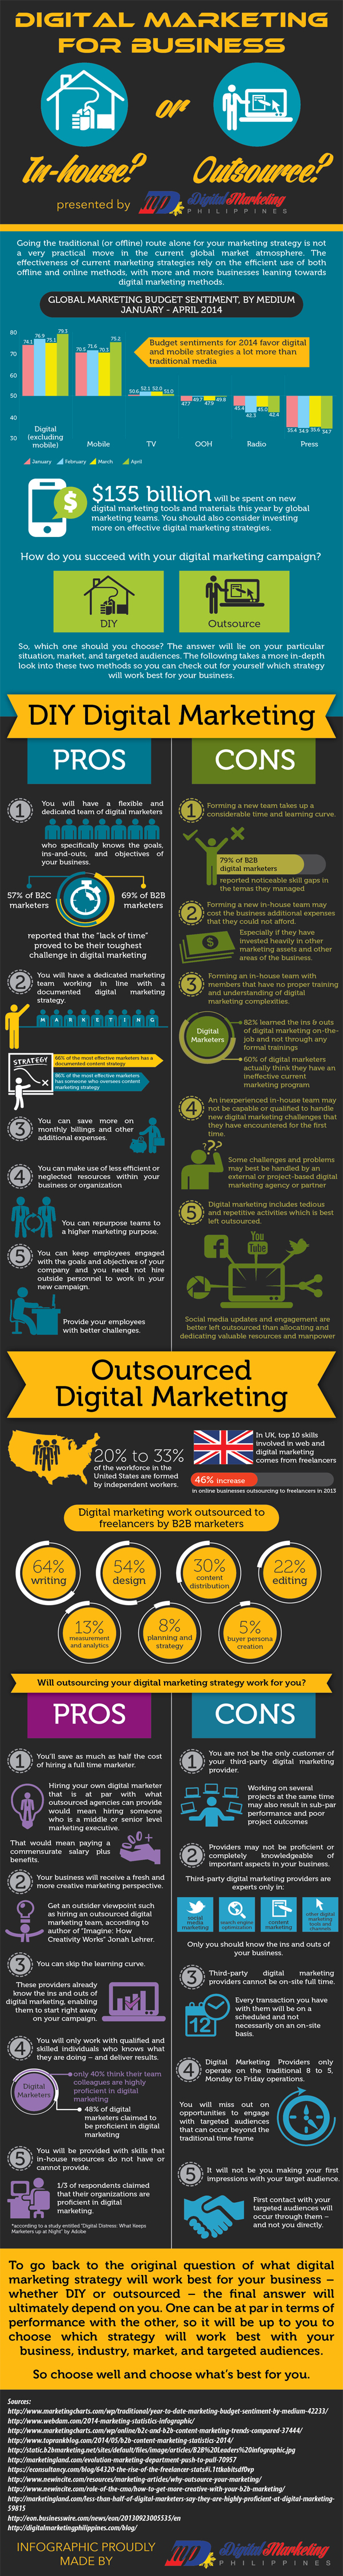 Digital Marketing for Business – In-house or Outsource